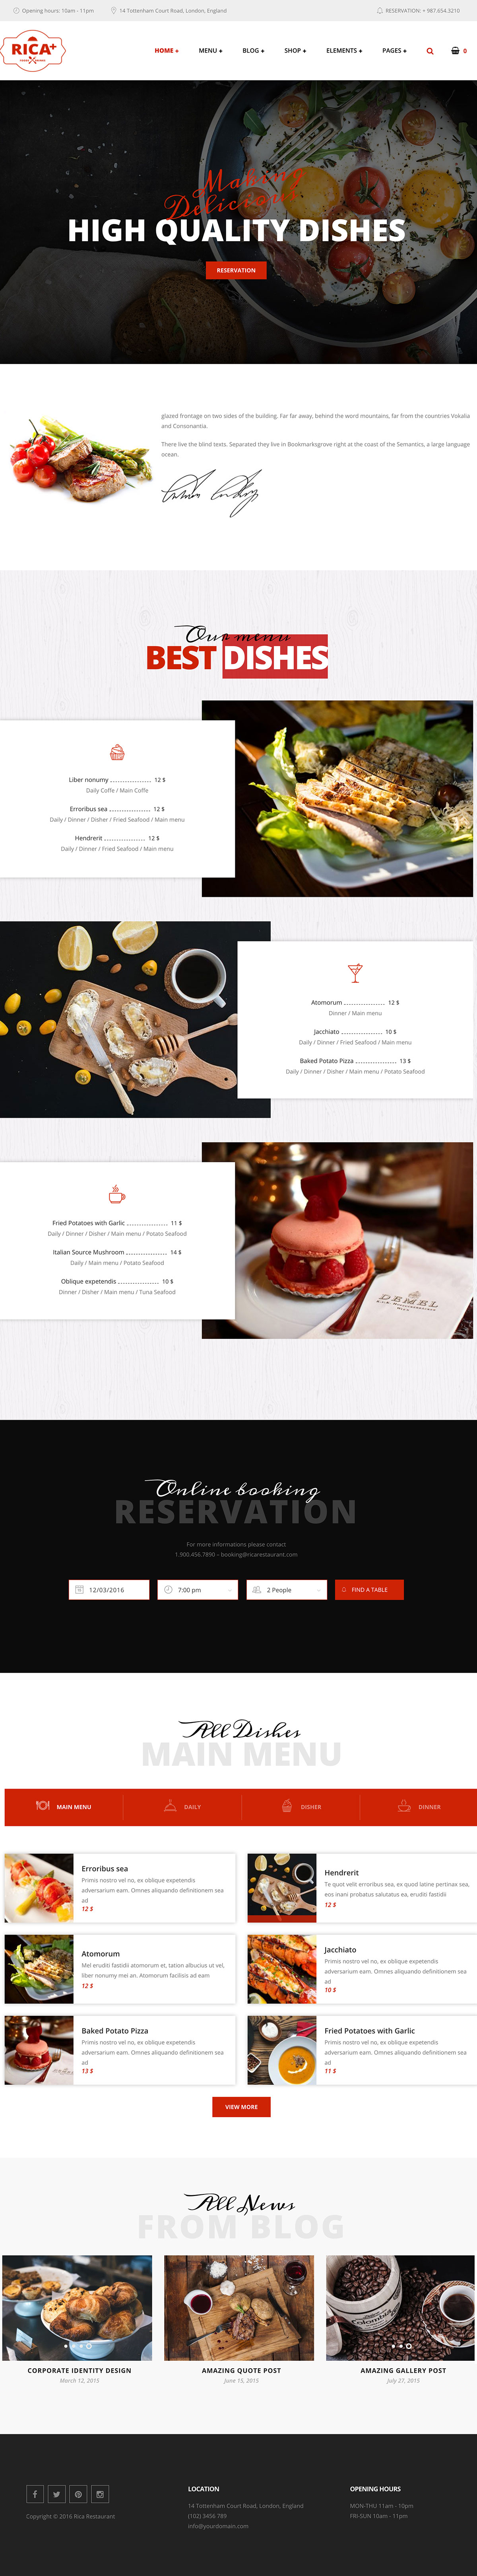 Rica Plus - A Delicious Restaurant, Cafe & Pub WordPress Theme